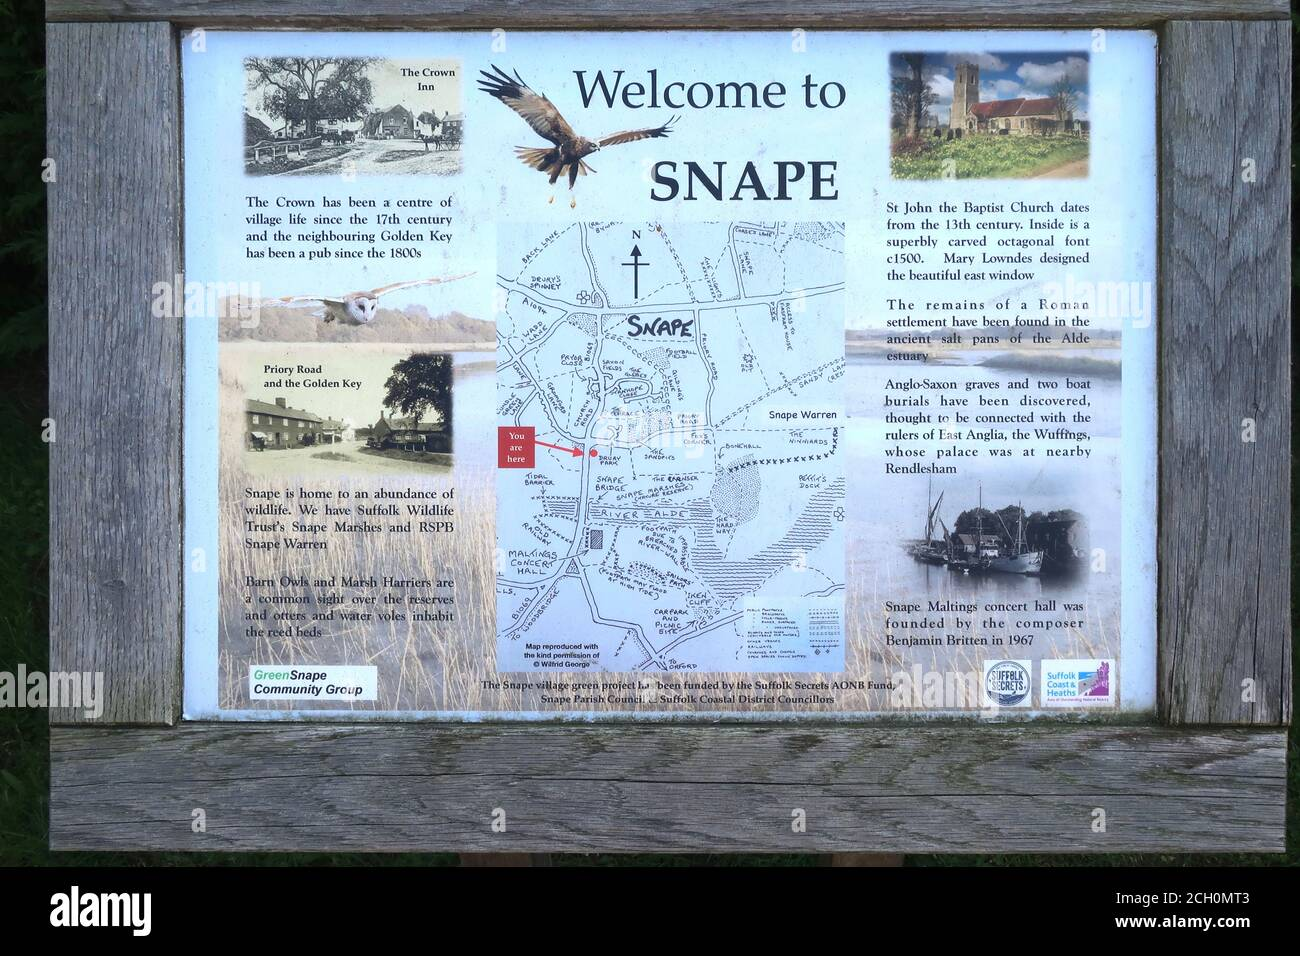 Snape, Suffolk, UK - 13 September 2020: Sunny Sunday autumn afternoon by the River Alde at Snape. Information board and map. Stock Photo